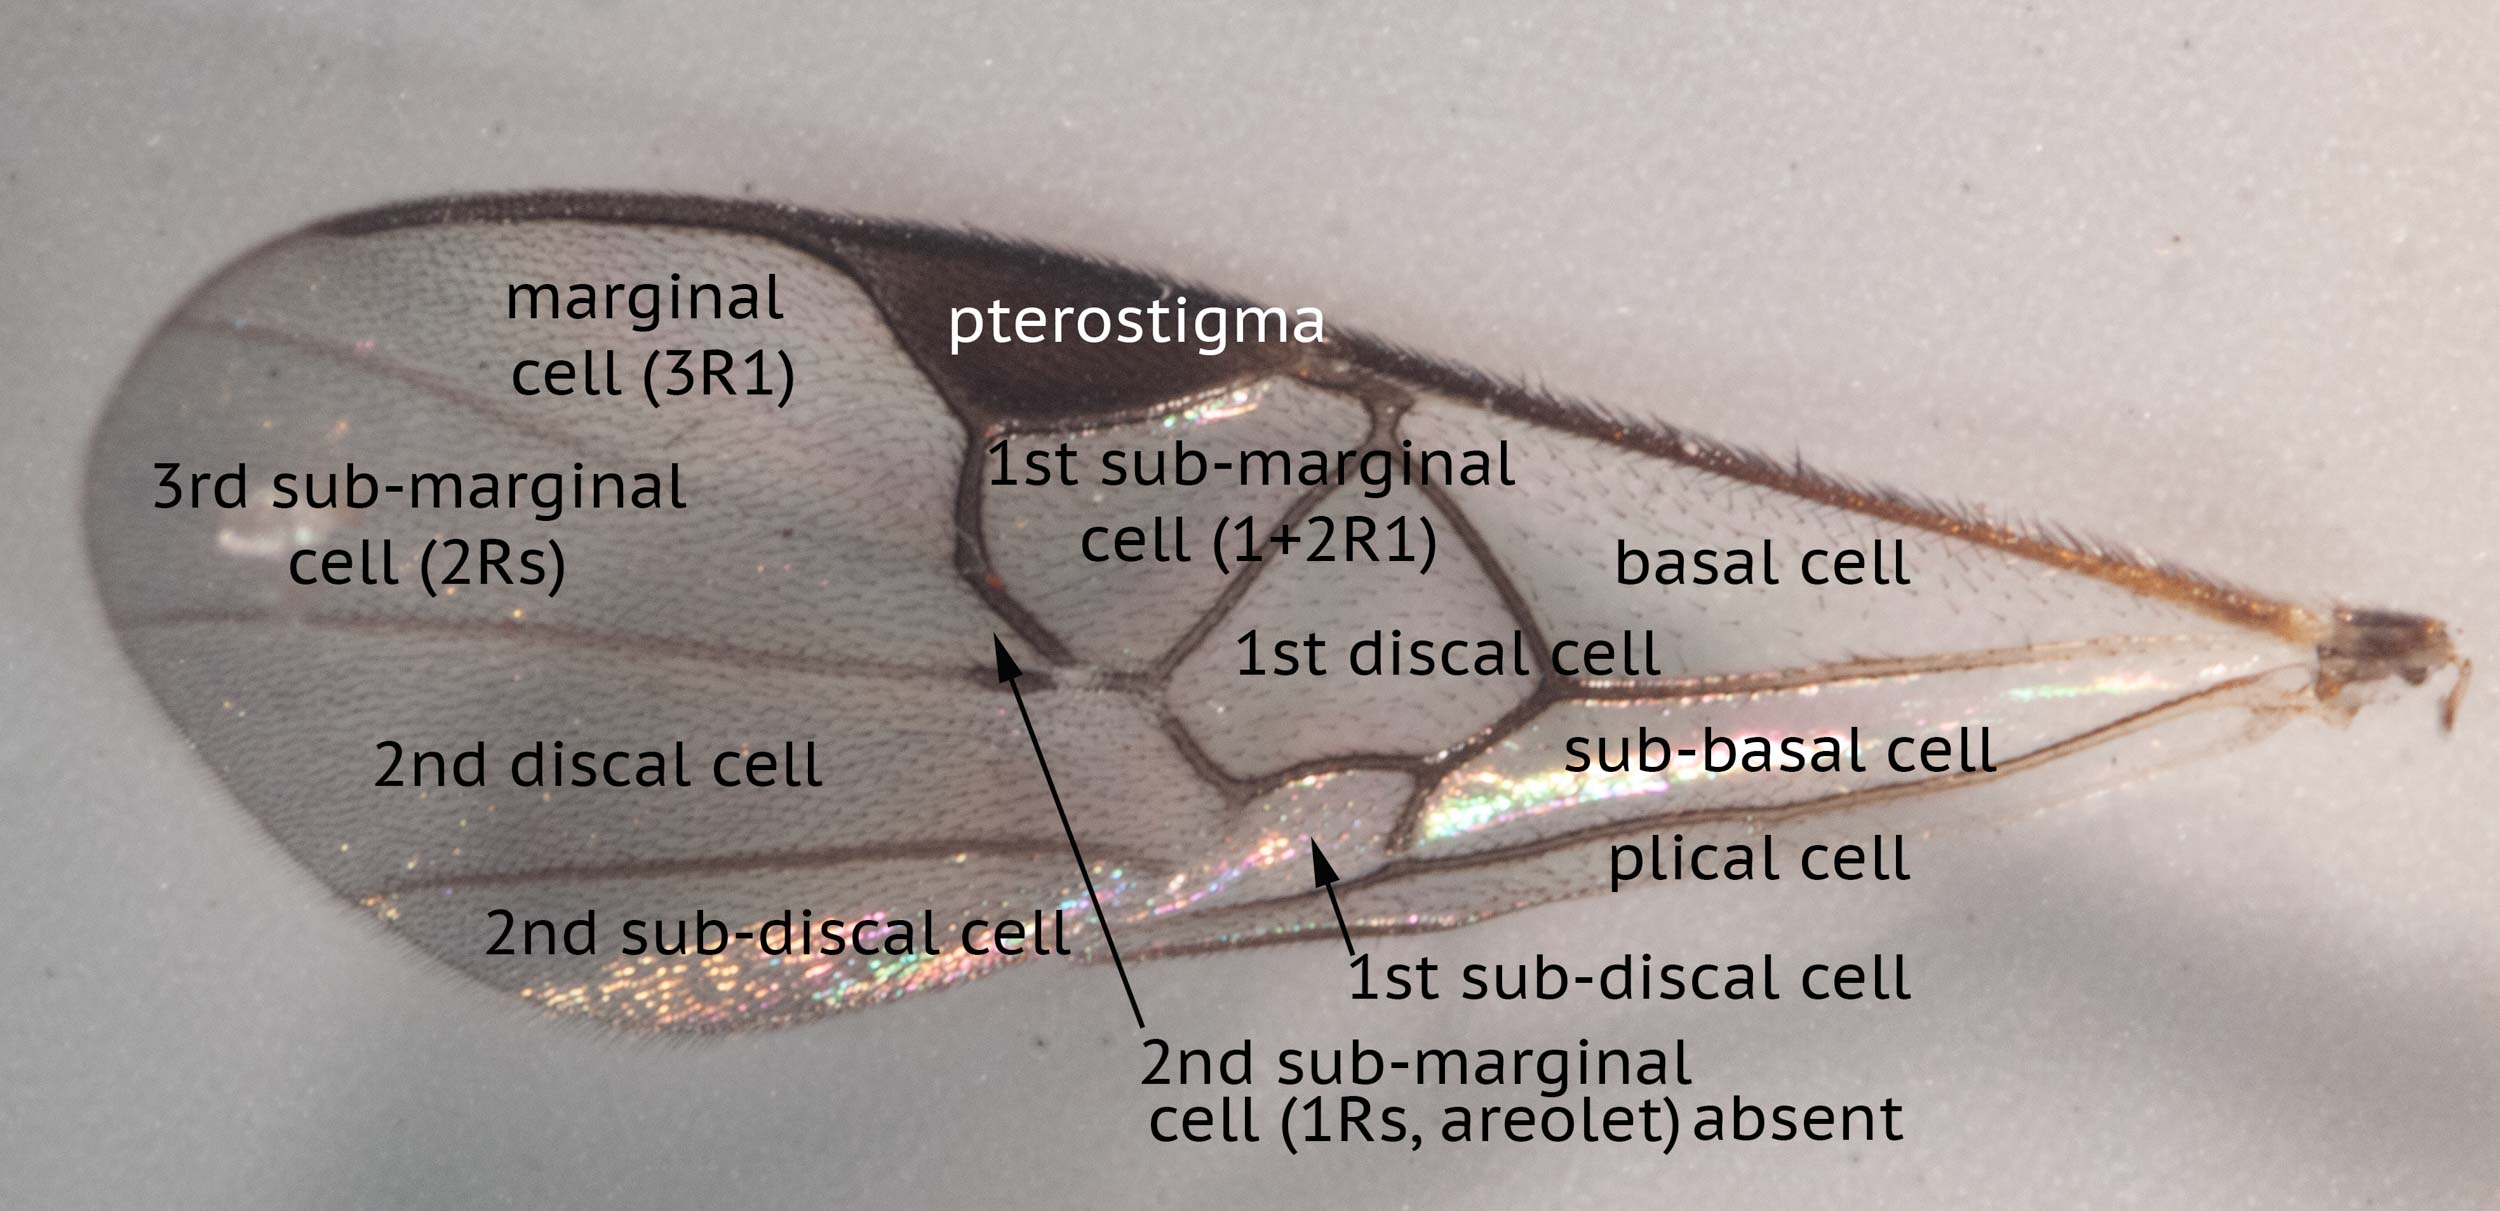 Cross-vein (r) between pterostigma and 2nd submarginal cell longer than anterior length of cell